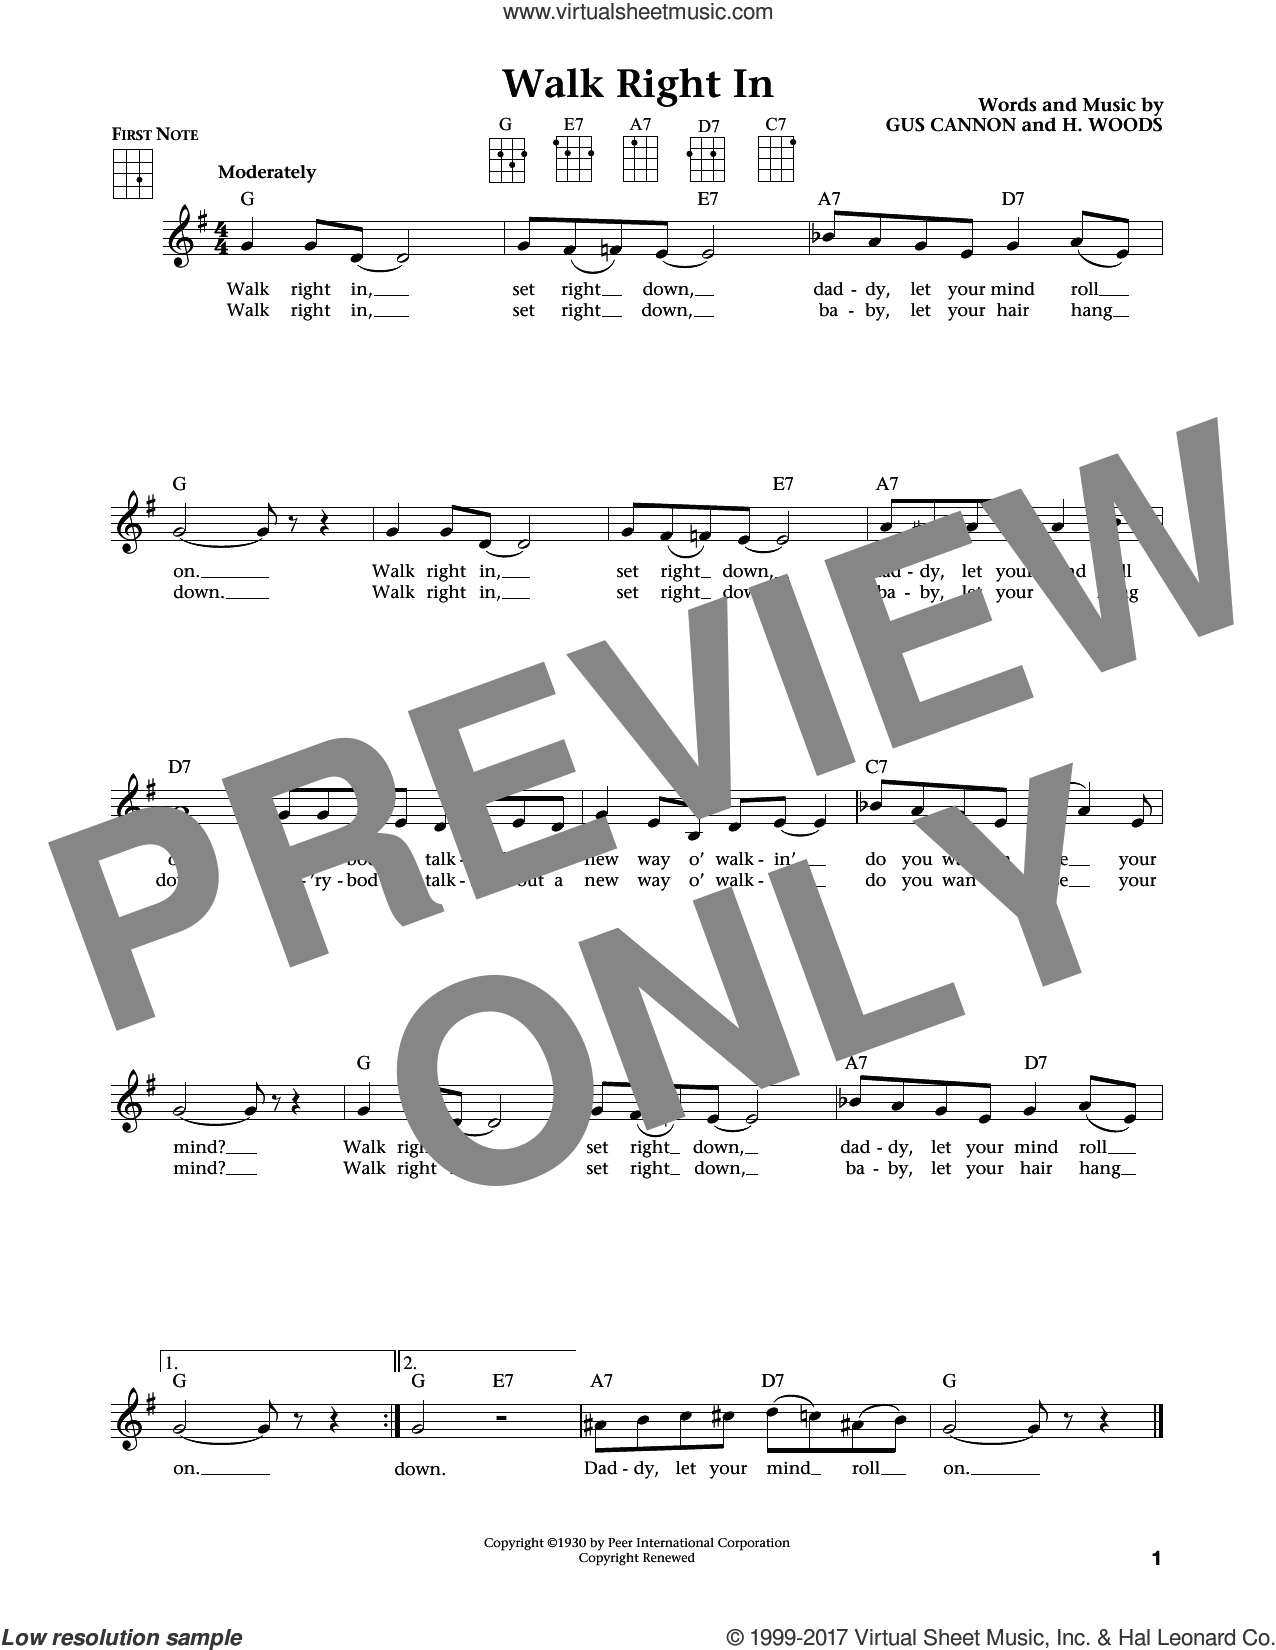 Walk Right In (from The Daily Ukulele) (arr. Liz and Jim Beloff) sheet music for ukulele by The Rooftop Singers, Jim Beloff, Liz Beloff, Gus Cannon and Harry Woods, intermediate skill level